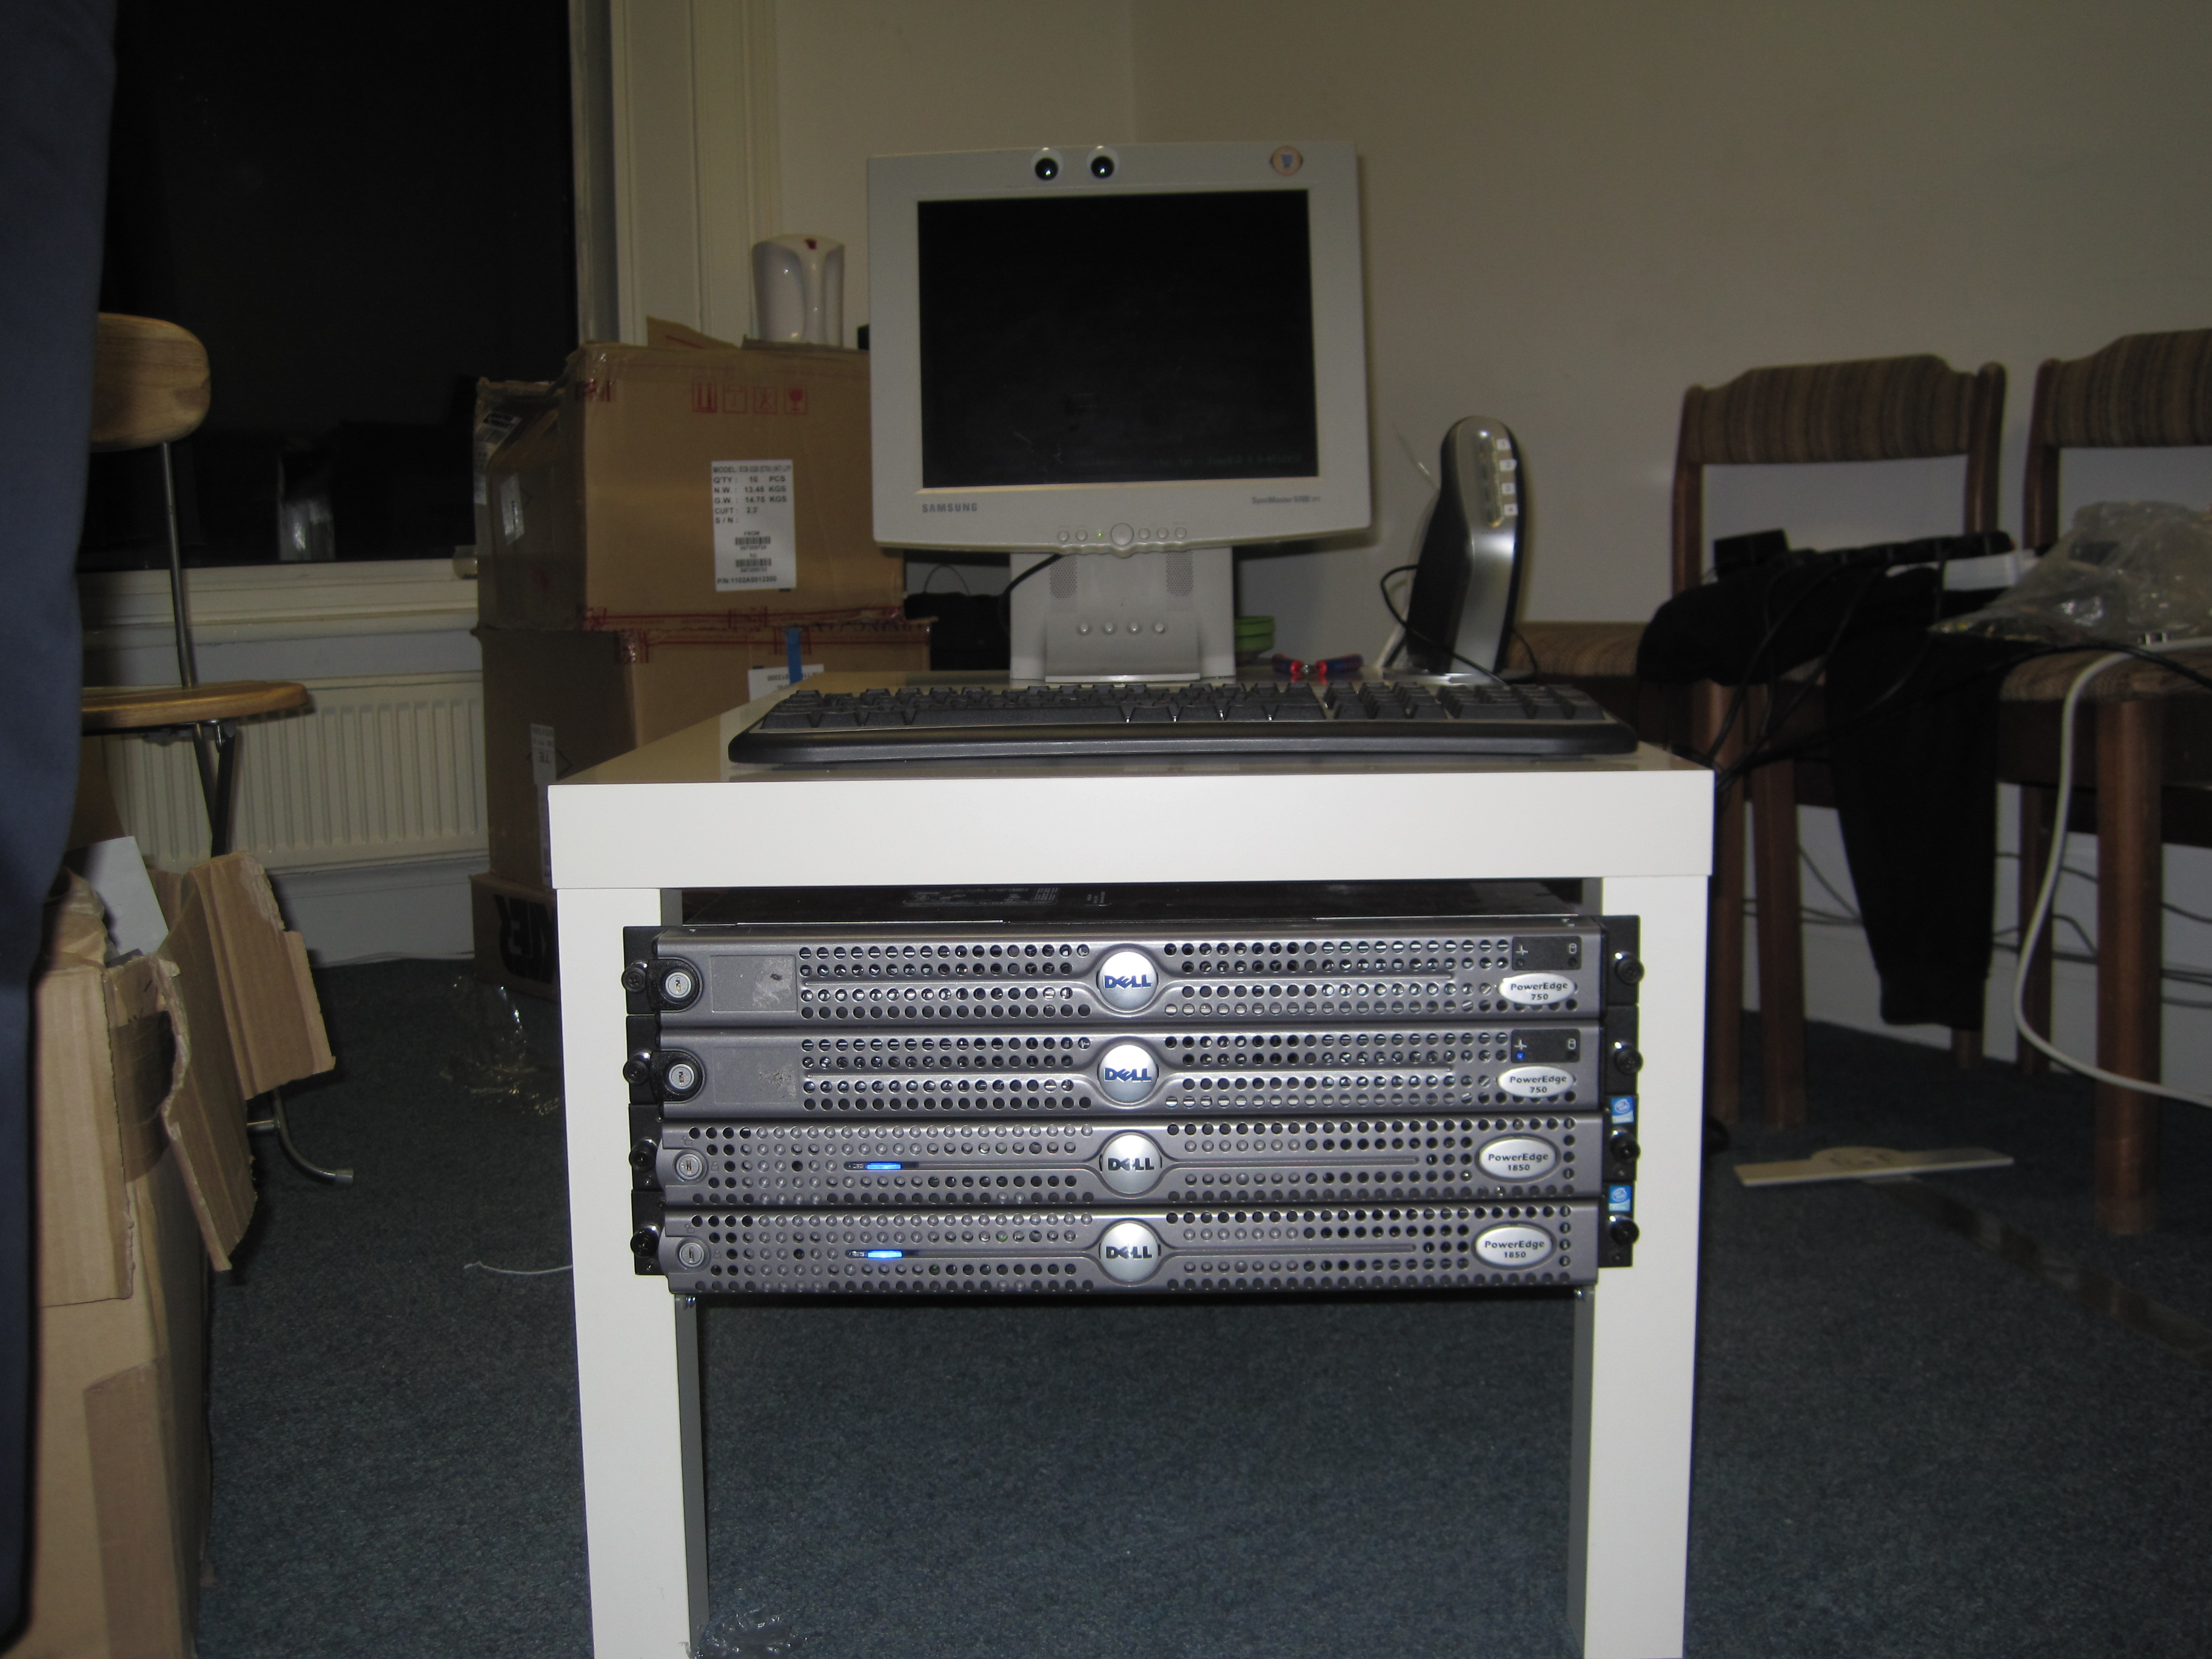 lack server rack | dublin hackerspace, diy, projects, electronics